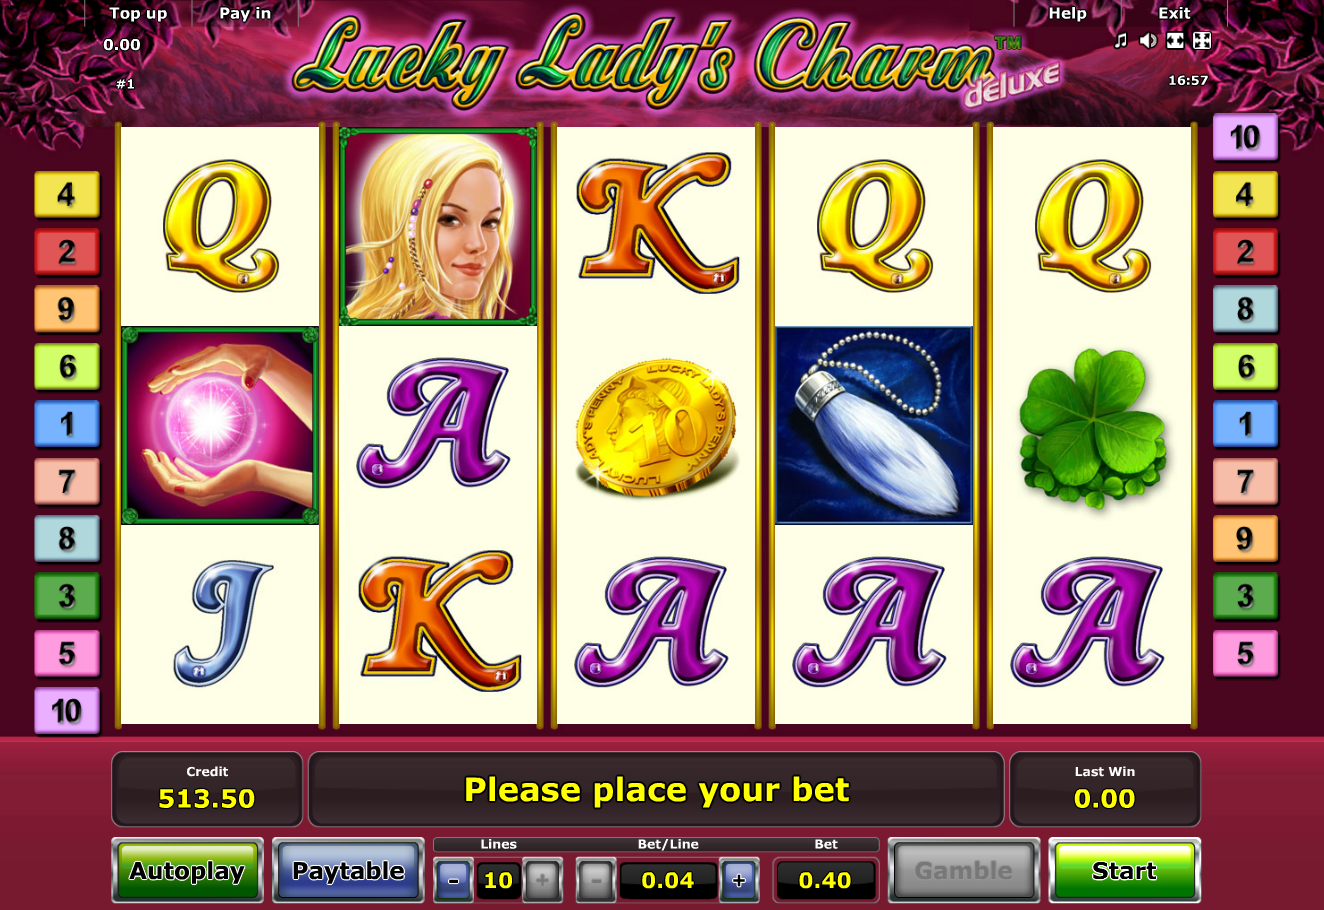 no deposit sign up bonus online casino lucky lady charm spielen